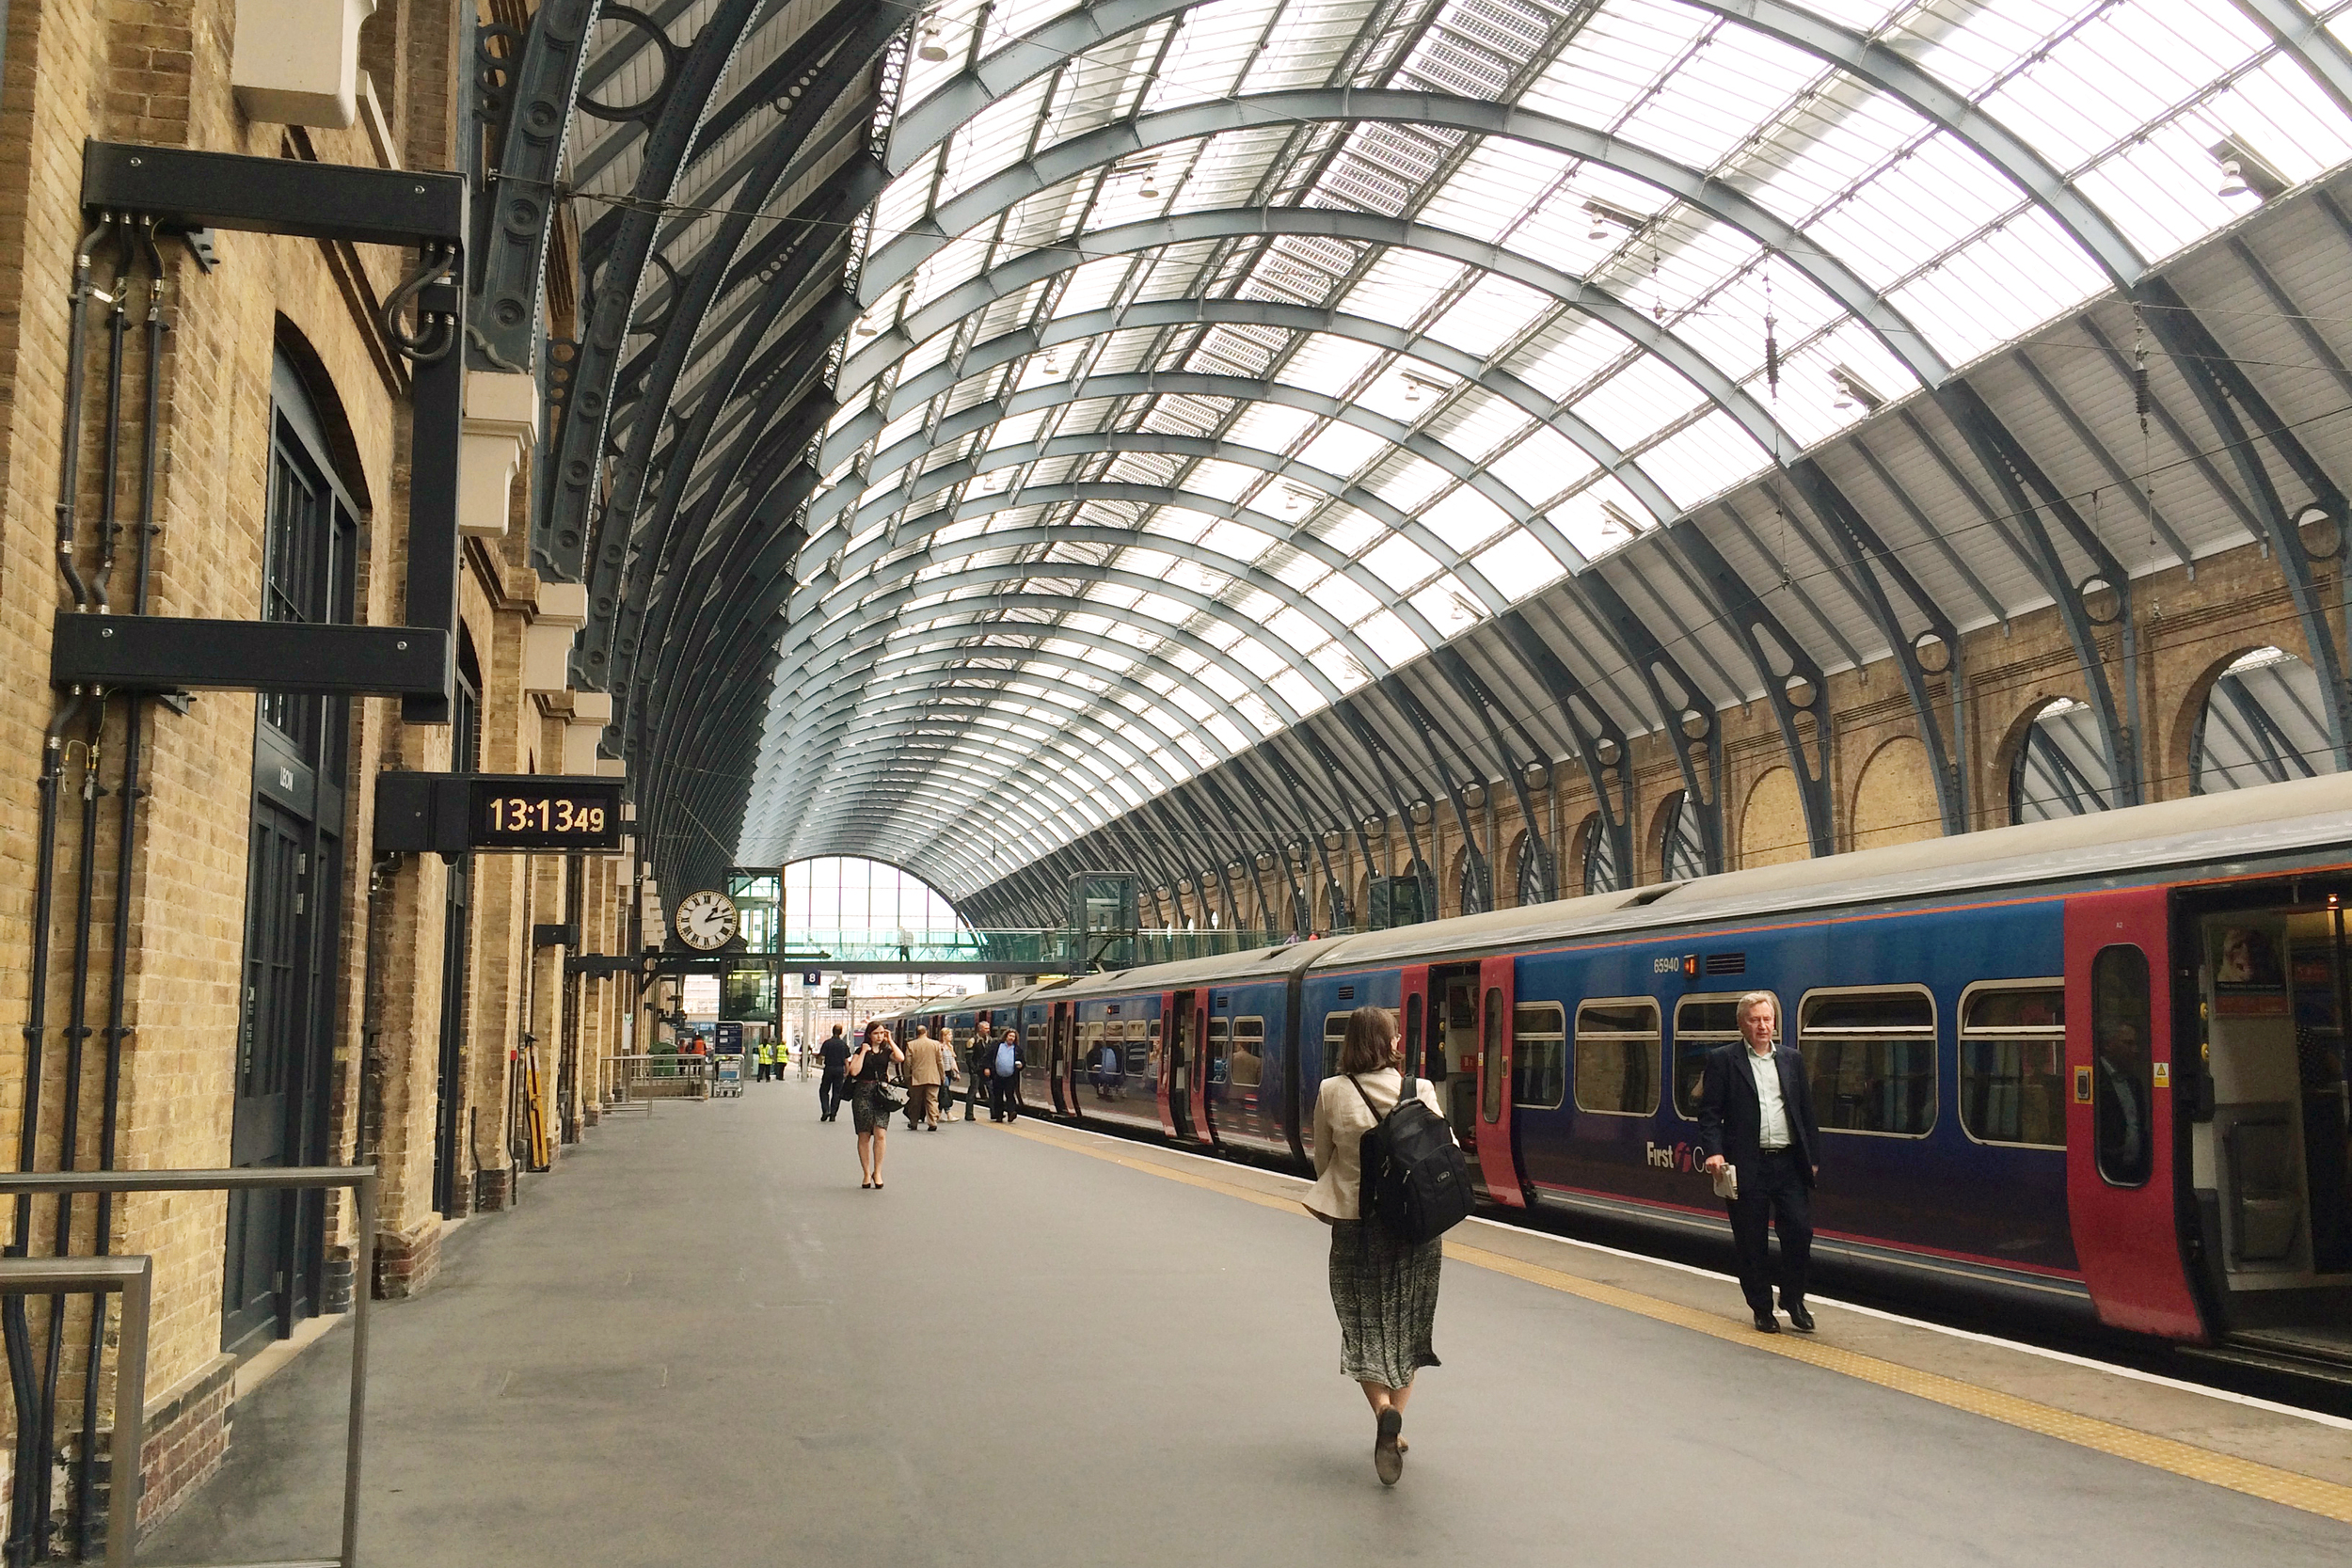 King's Cross Station, where you catch your train to Hogwarts :)